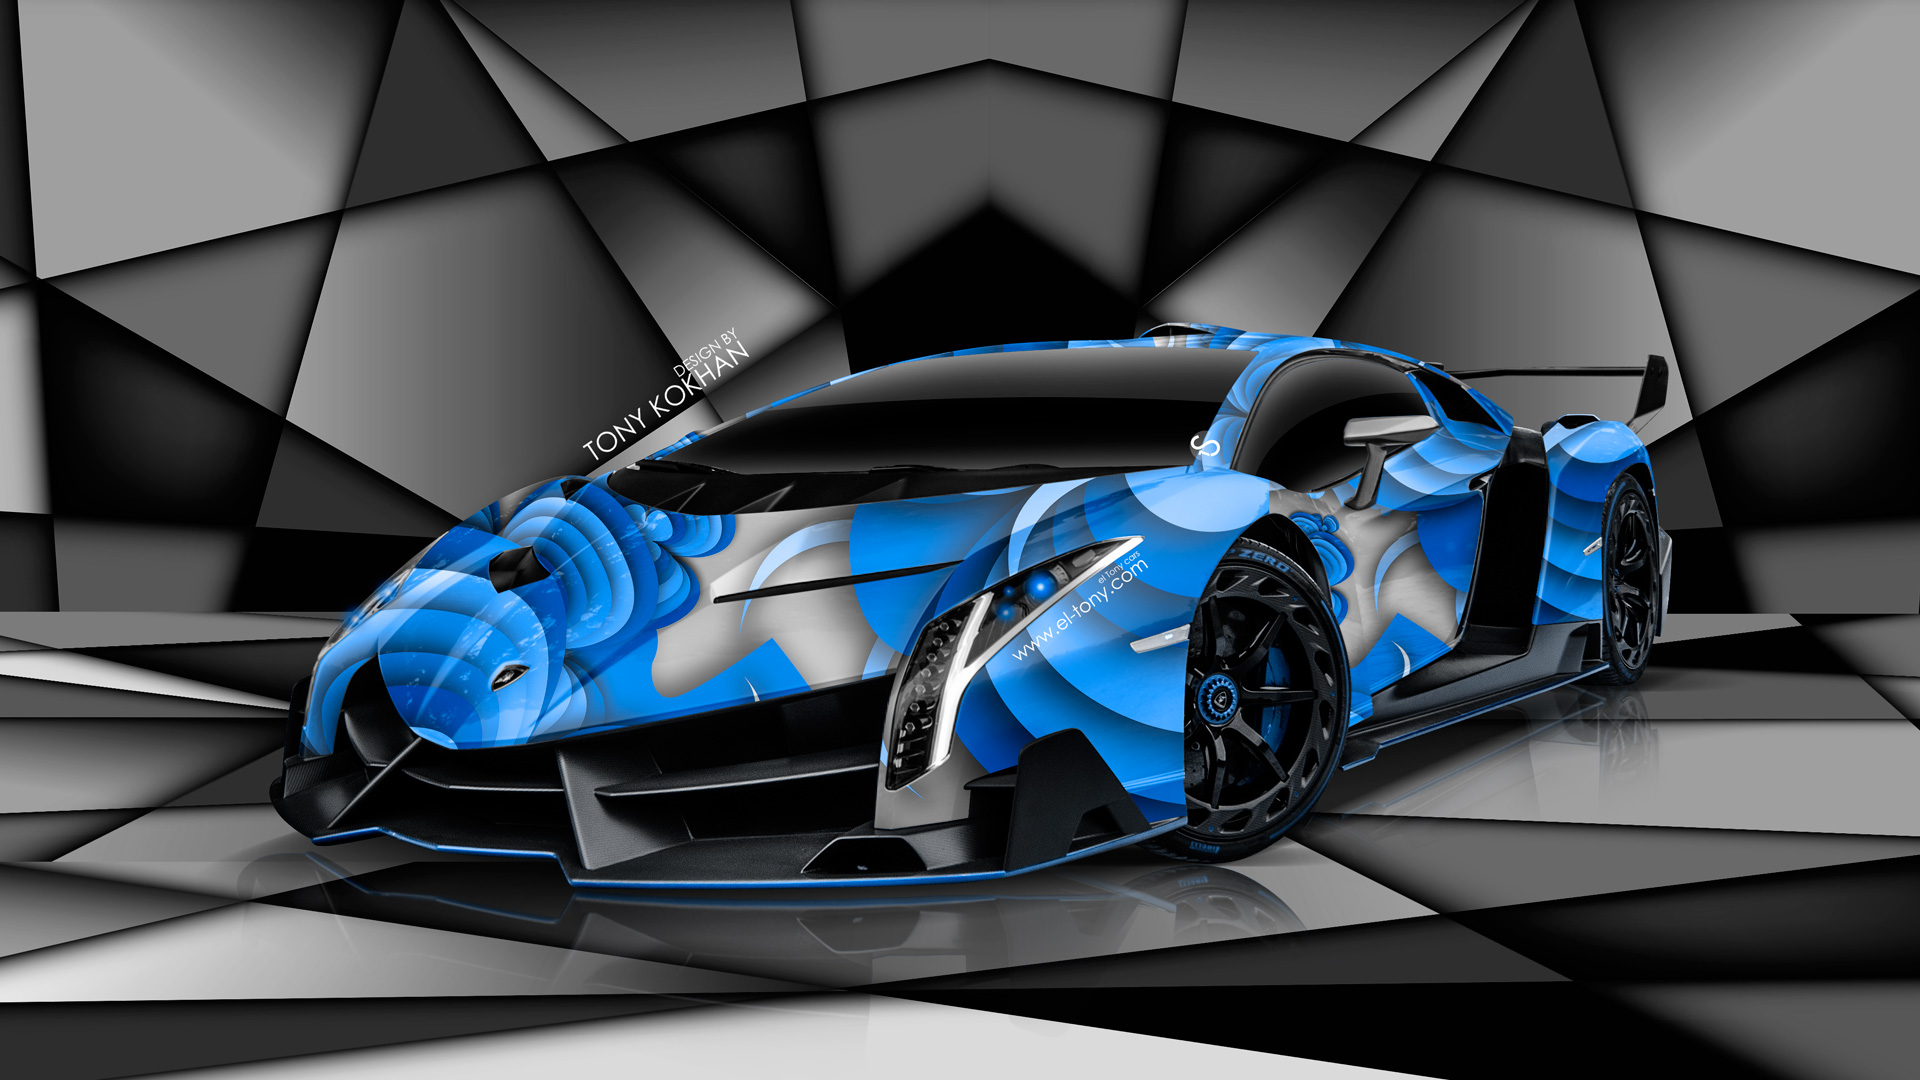 Black And Blue Lamborghini Wallpaper 14 Free